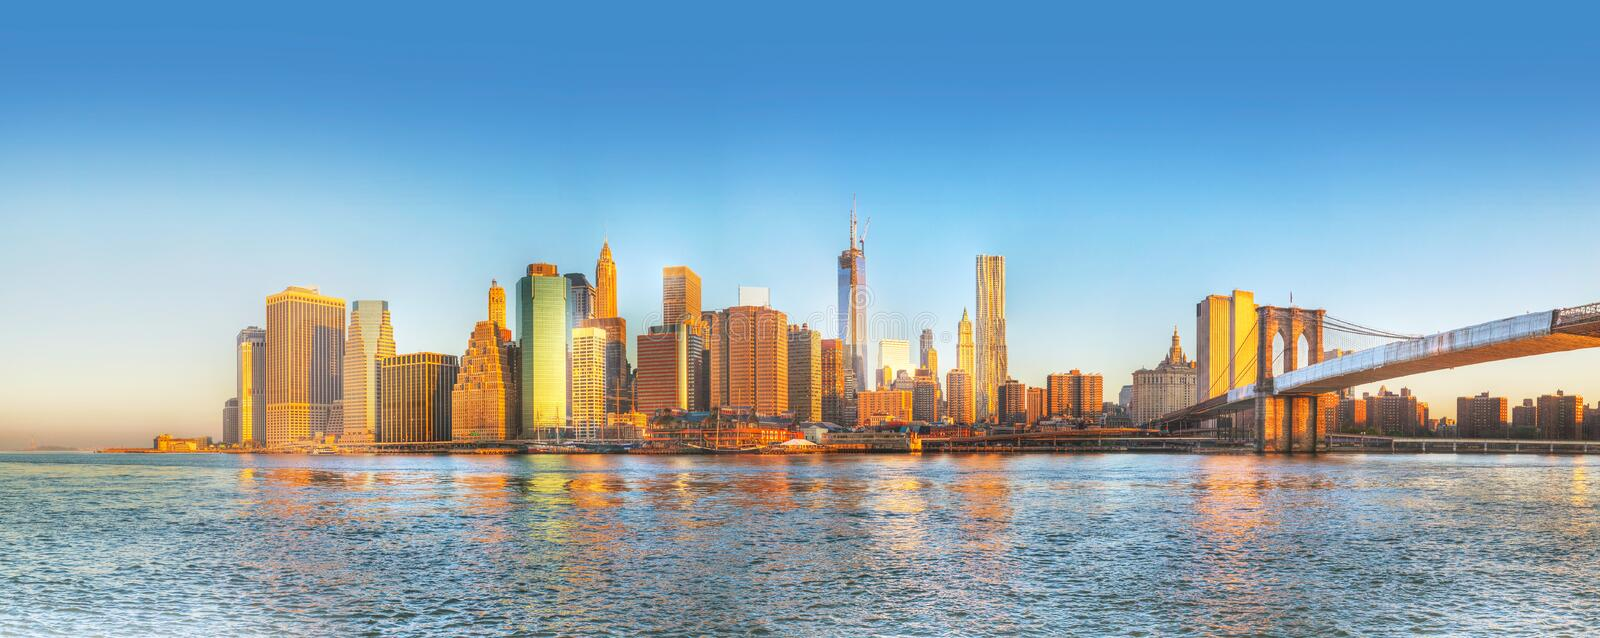 New York City Panorama In The Morning Royalty Free Stock Photography